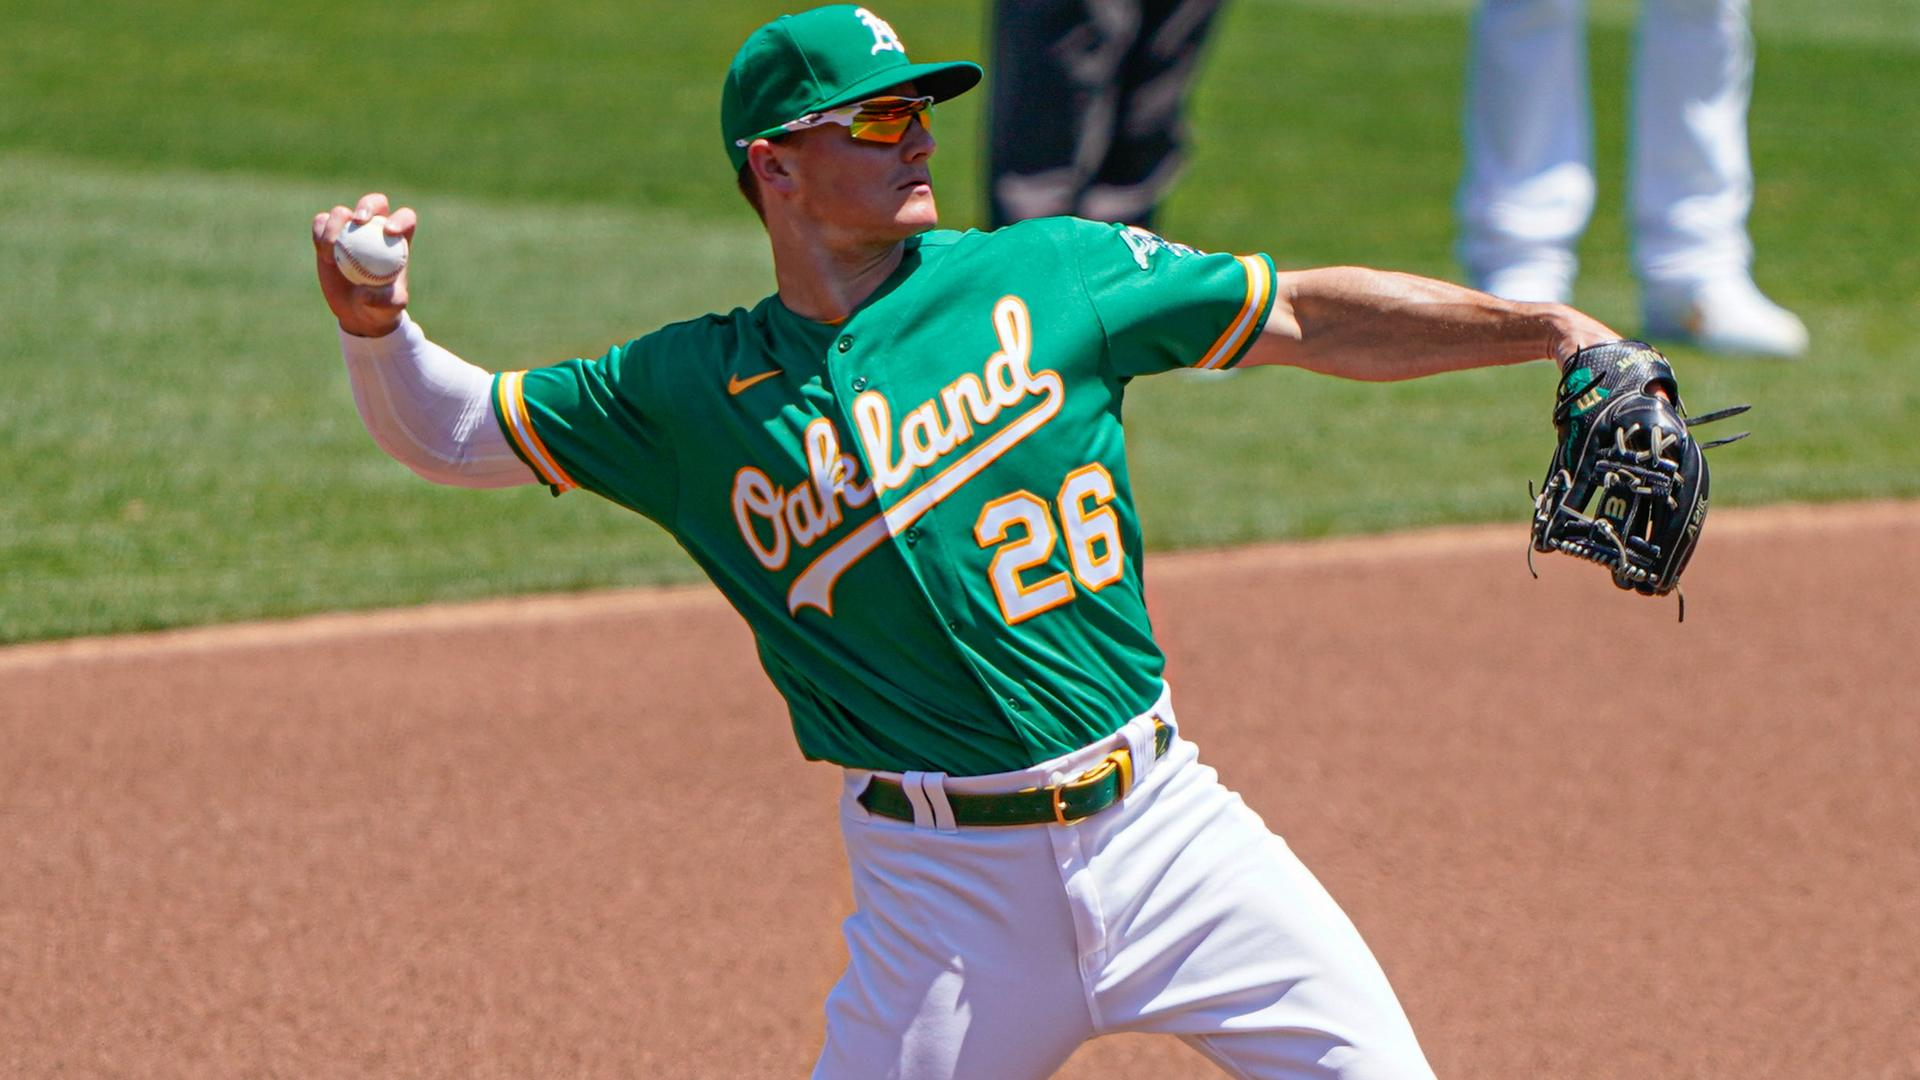 A's vs. Rangers live stream: How to watch MLB games online, on TV